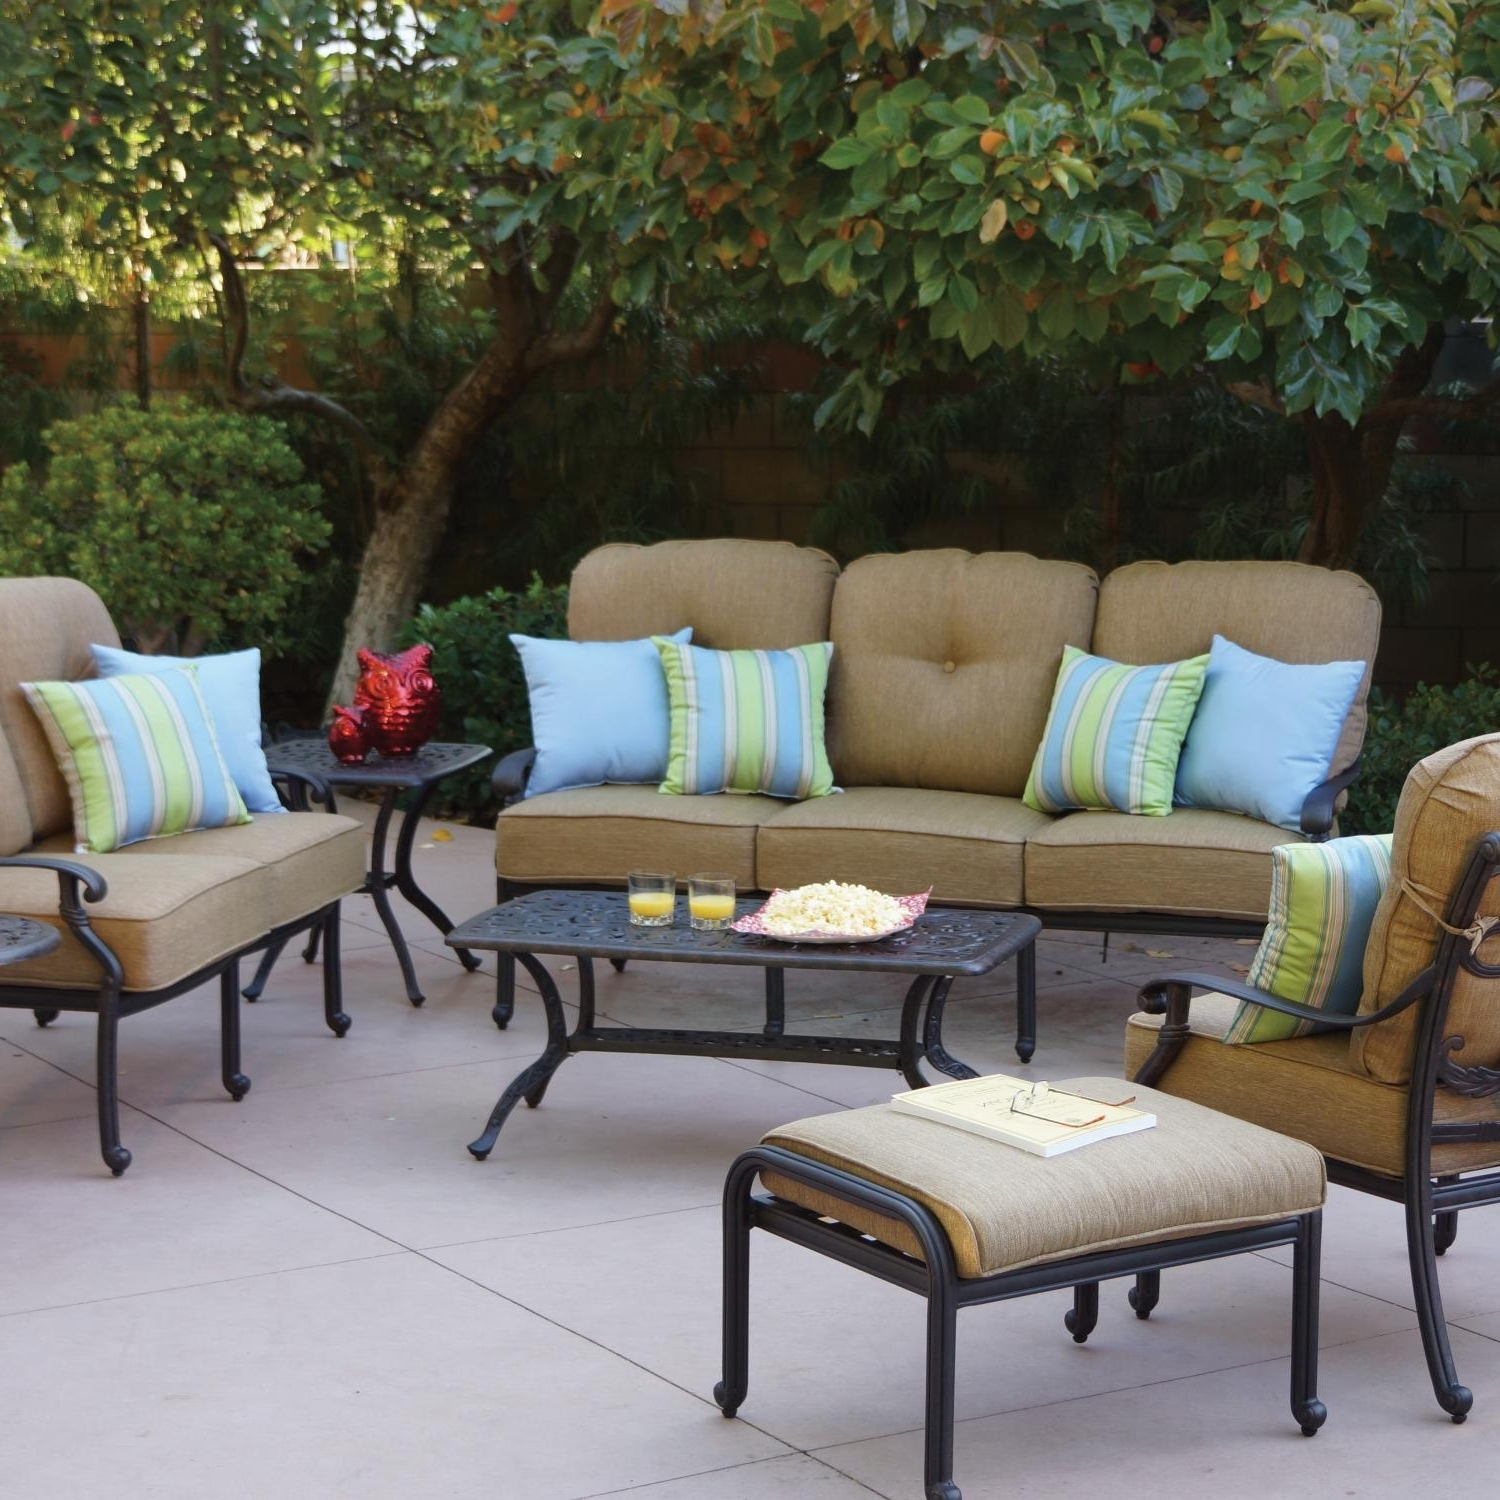 Preferred Darlee Santa Monica 7 Piece Aluminum Patio Conversation Seating Set With Aluminum Patio Conversation Sets (View 13 of 15)